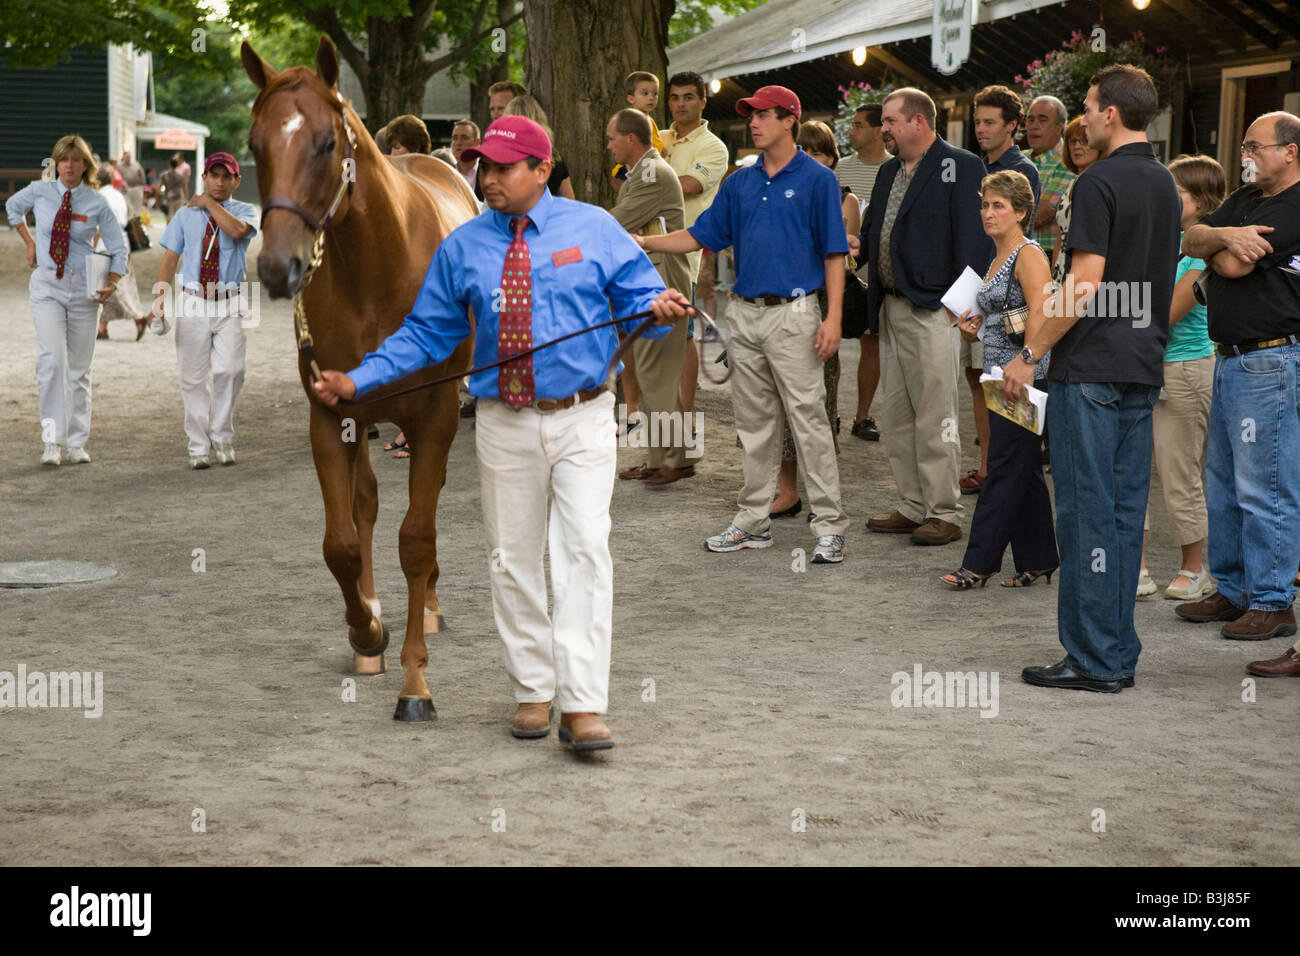 Annual Fasig Tipton thoroughbred horse auction Saratoga Springs New York - Stock Image